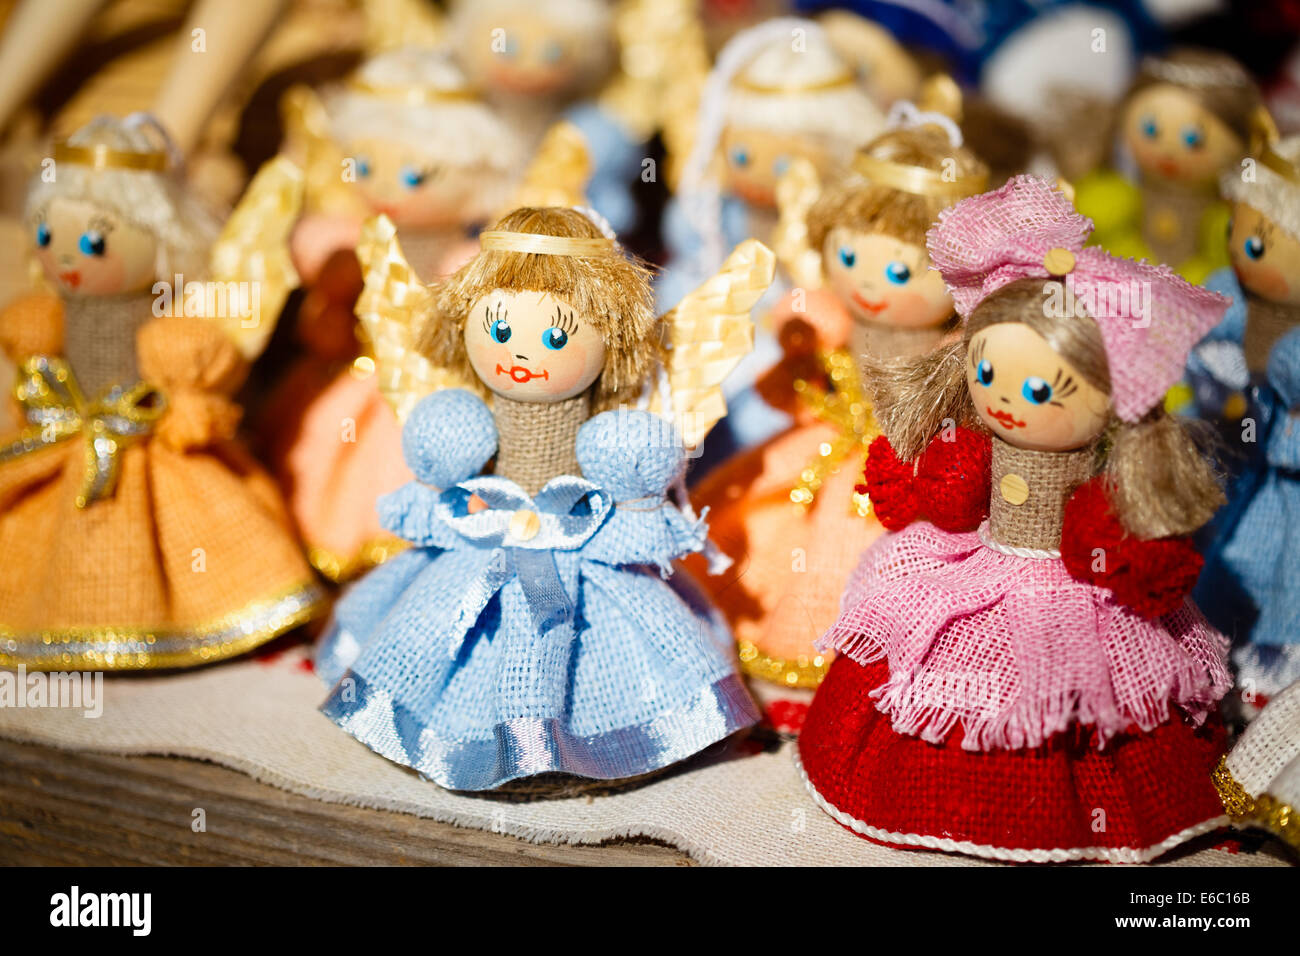 Colorful Belarusian Straw Dolls At The Market. Straw Dolls Are The Most Popular Souvenirs From Belarus And Symbol - Stock Image